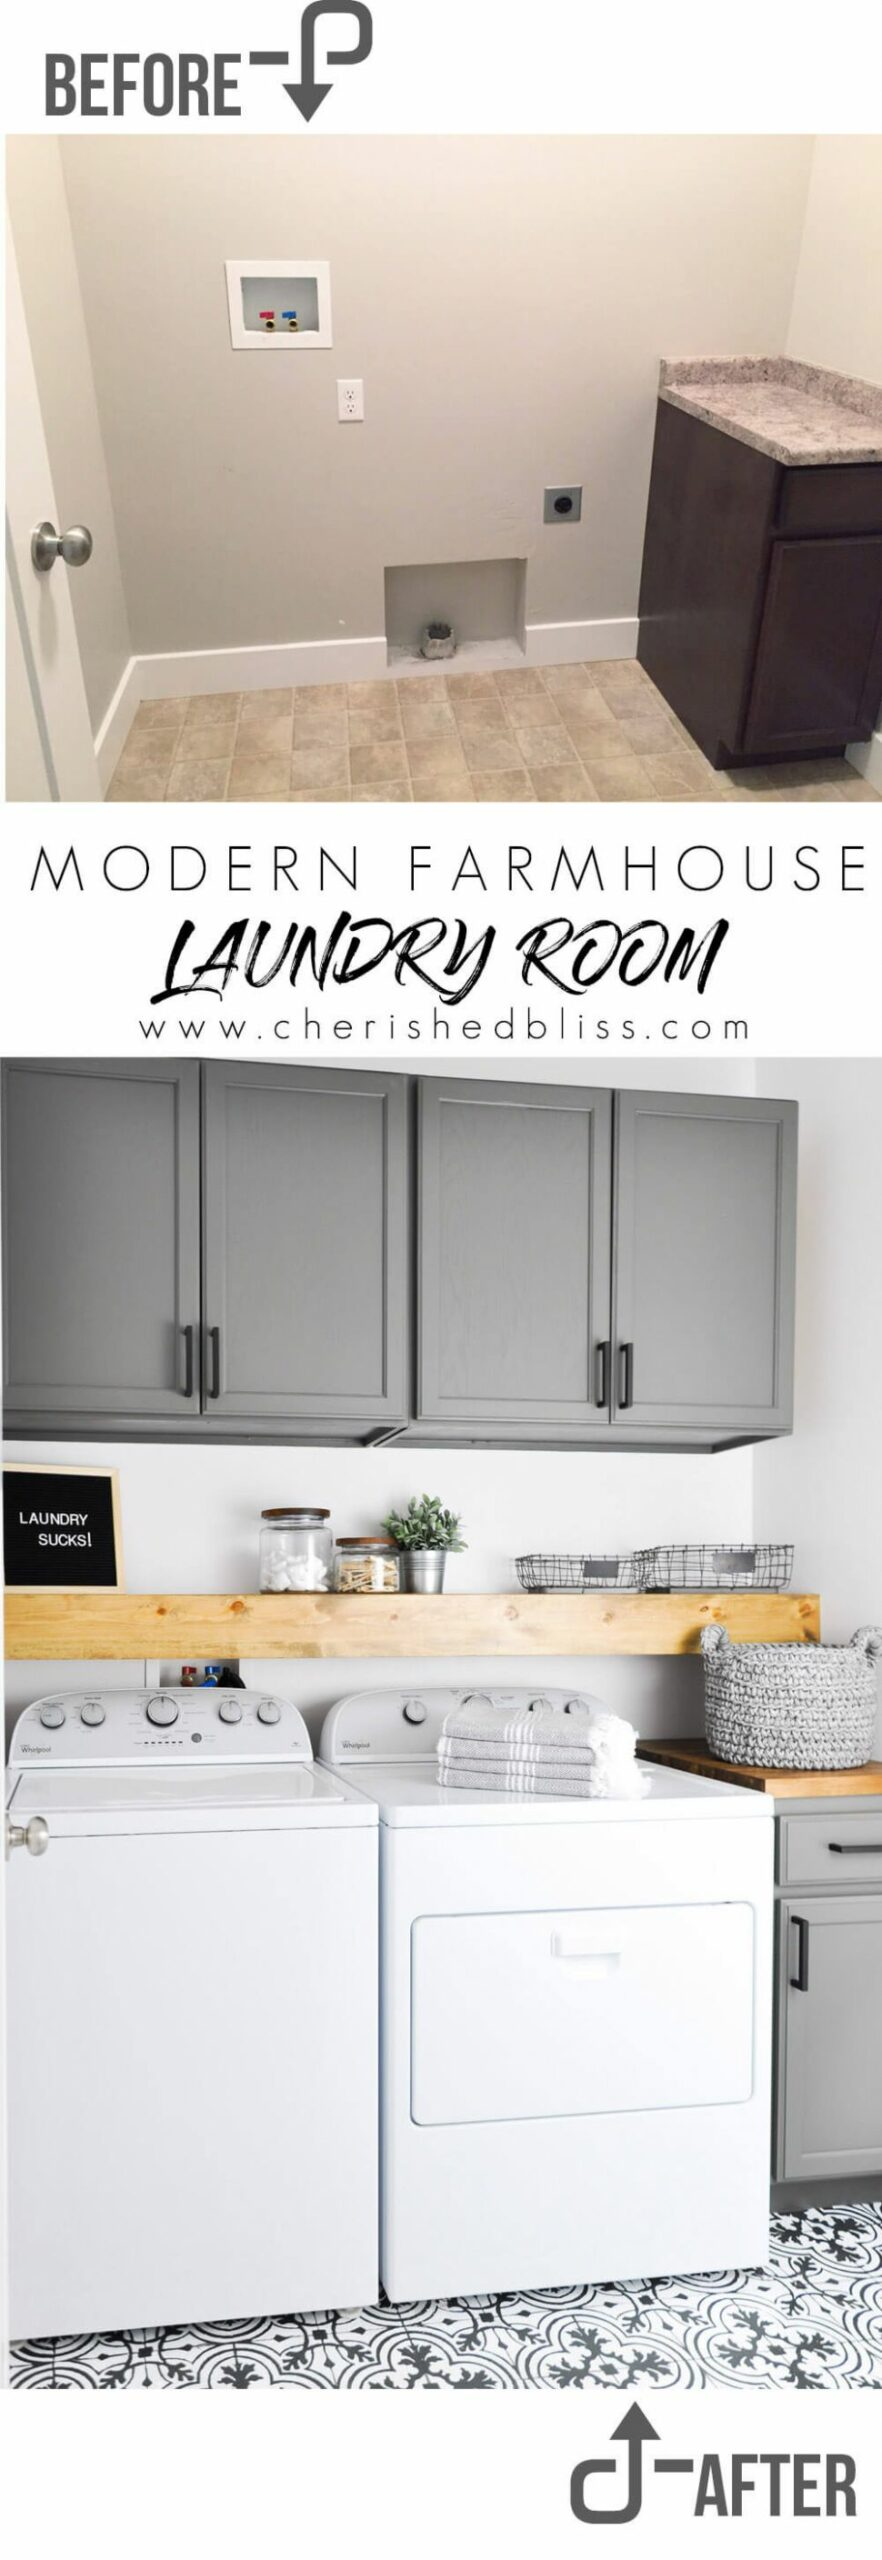 9 Best Budget Friendly Laundry Room Makeover Ideas and Designs ...